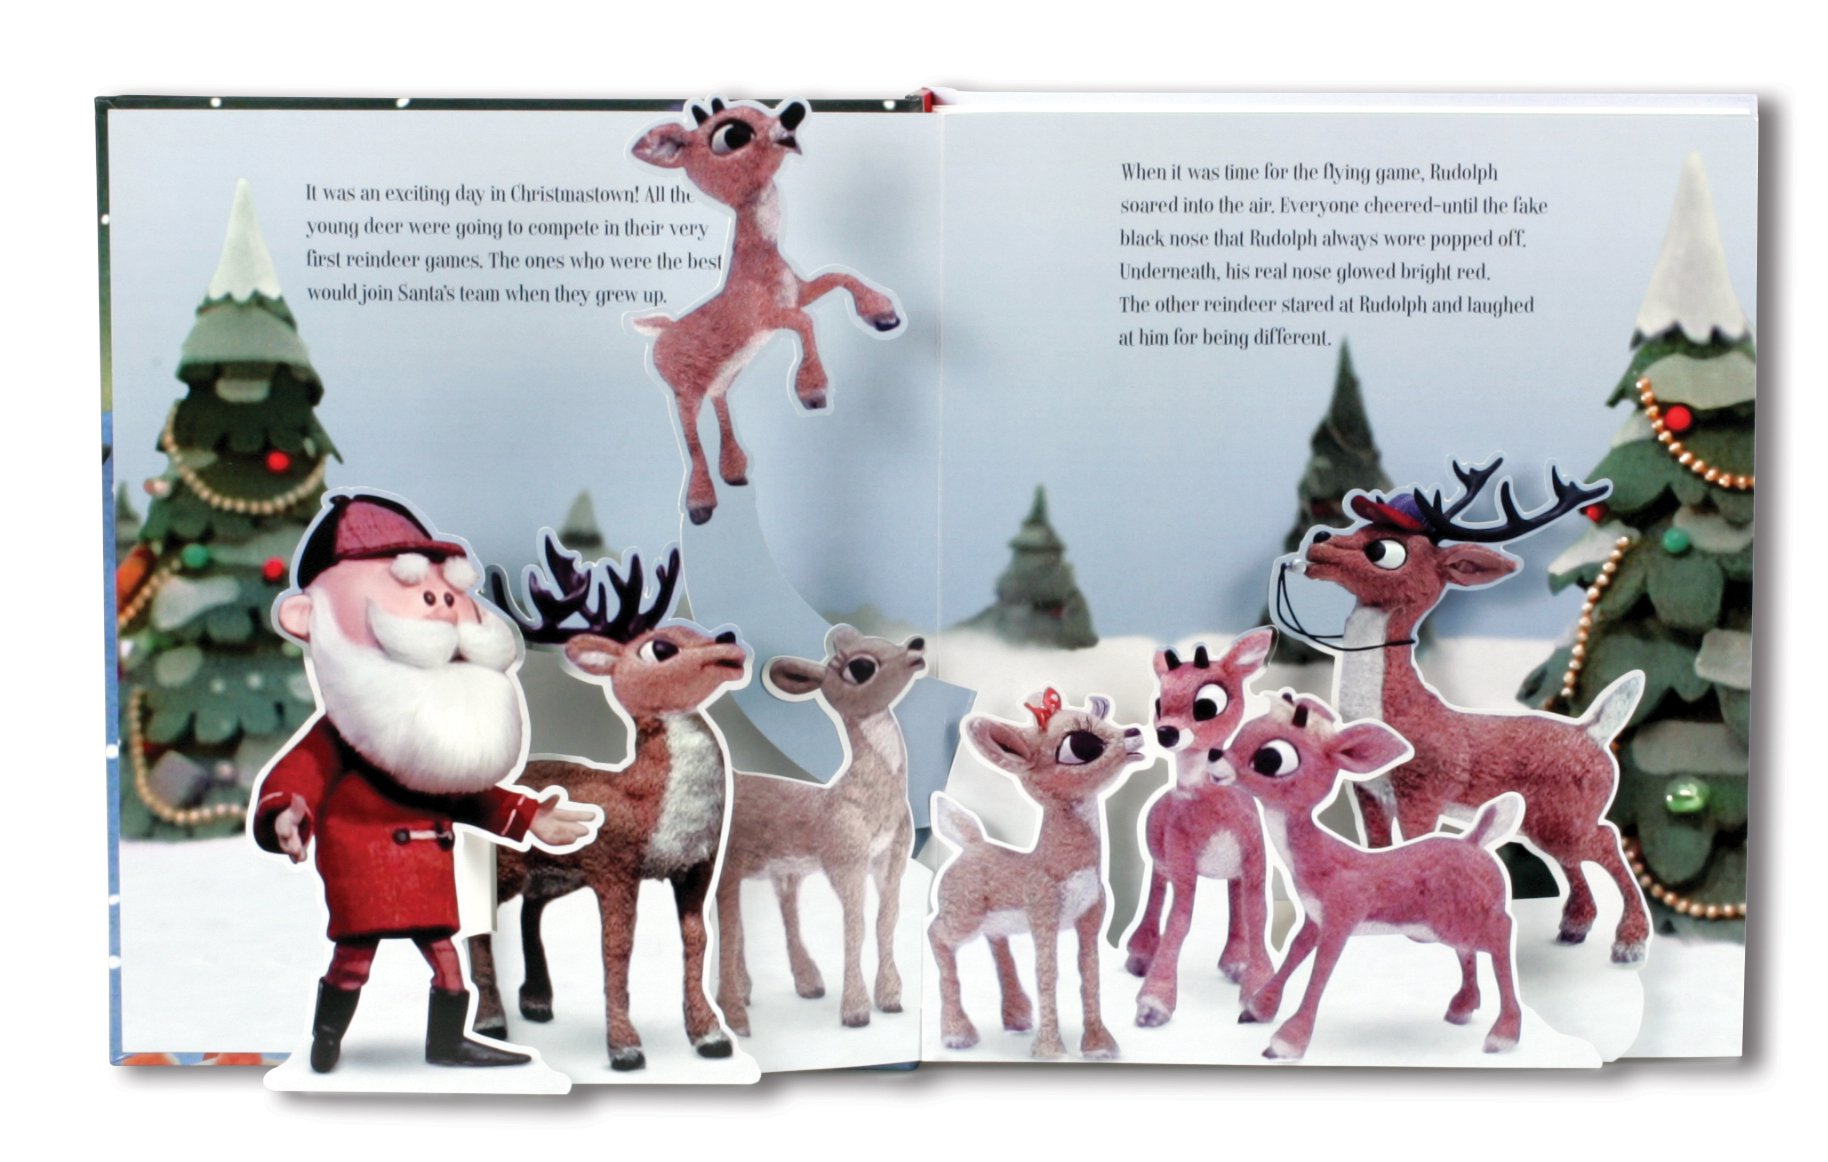 Amazon.com: Rudolph the Red-Nosed Reindeer Pop-Up Book (9781626861978):  Lisa Ann Marsoli, Keith Andrew Finch: Books